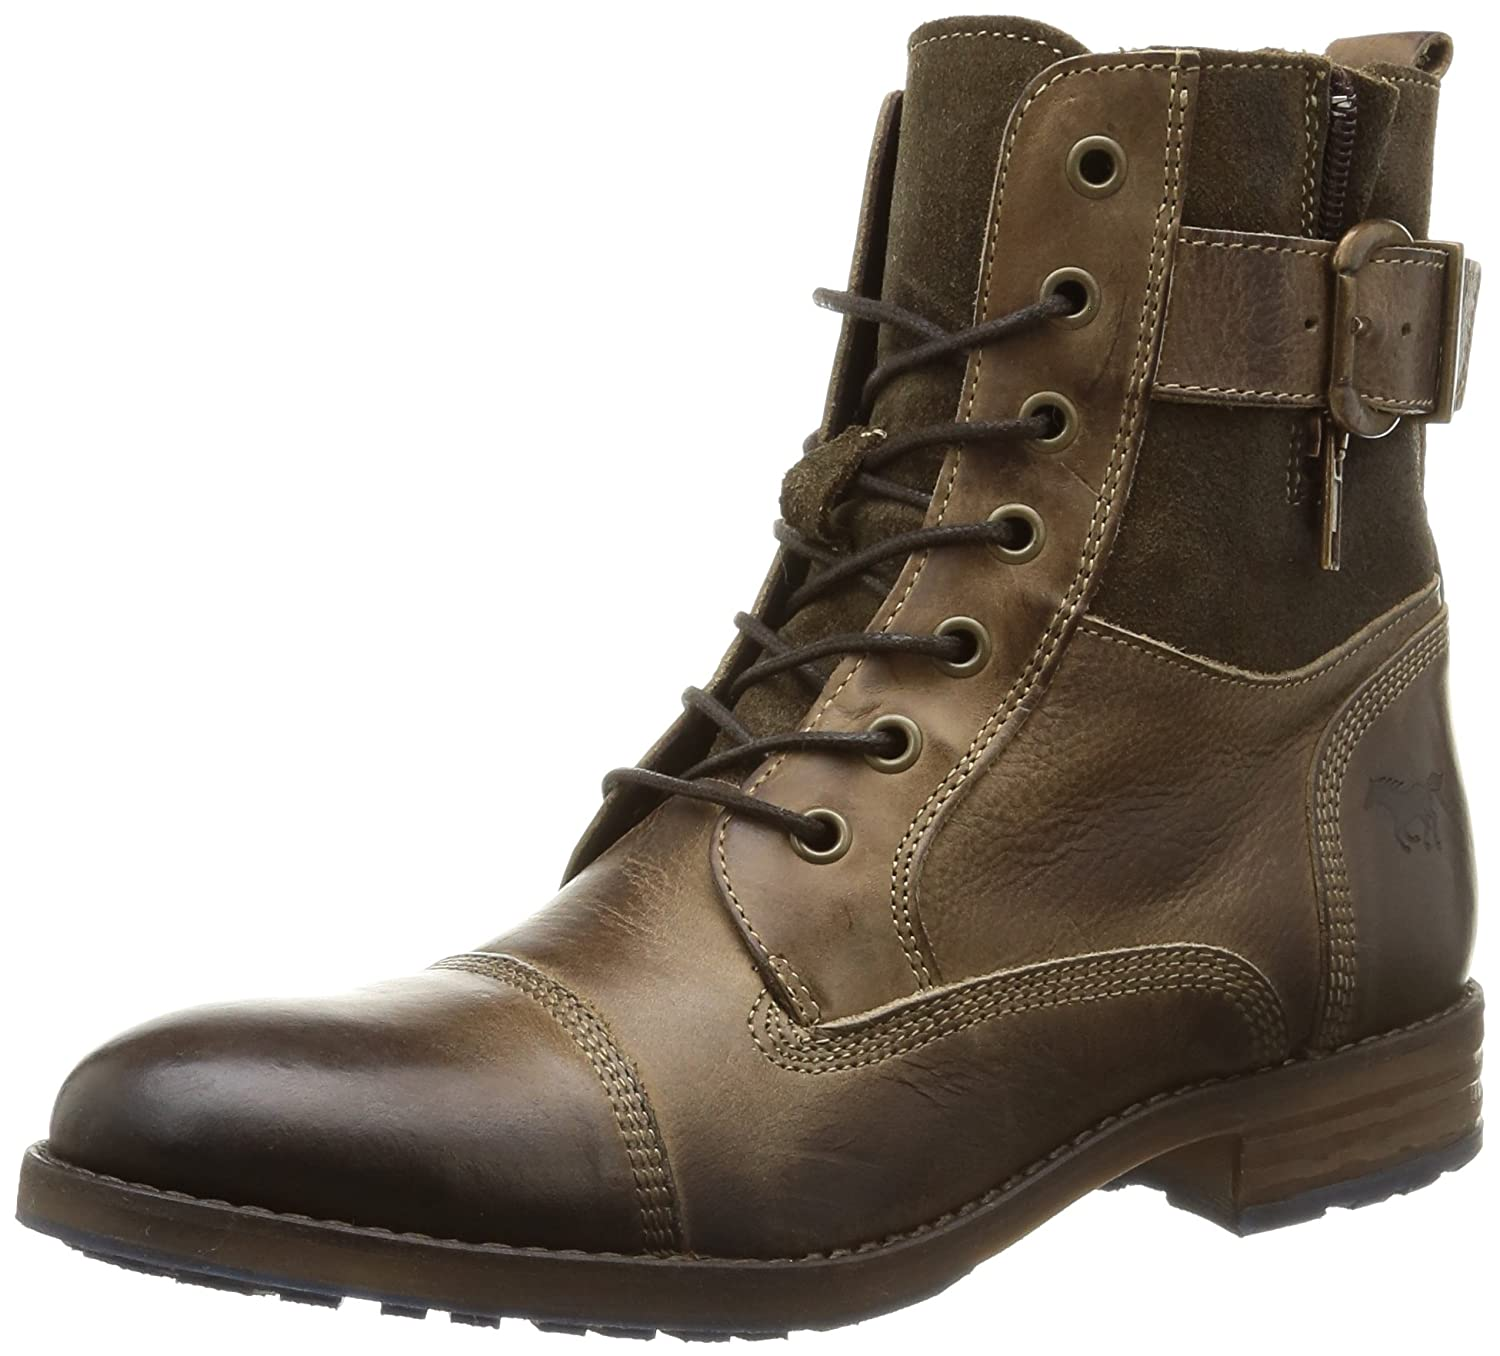 Mustang Dunkelbraun) 2853502, Bottes Classiques Classiques Femme Marron 16920 (32 Dunkelbraun) 31bb362 - therethere.space